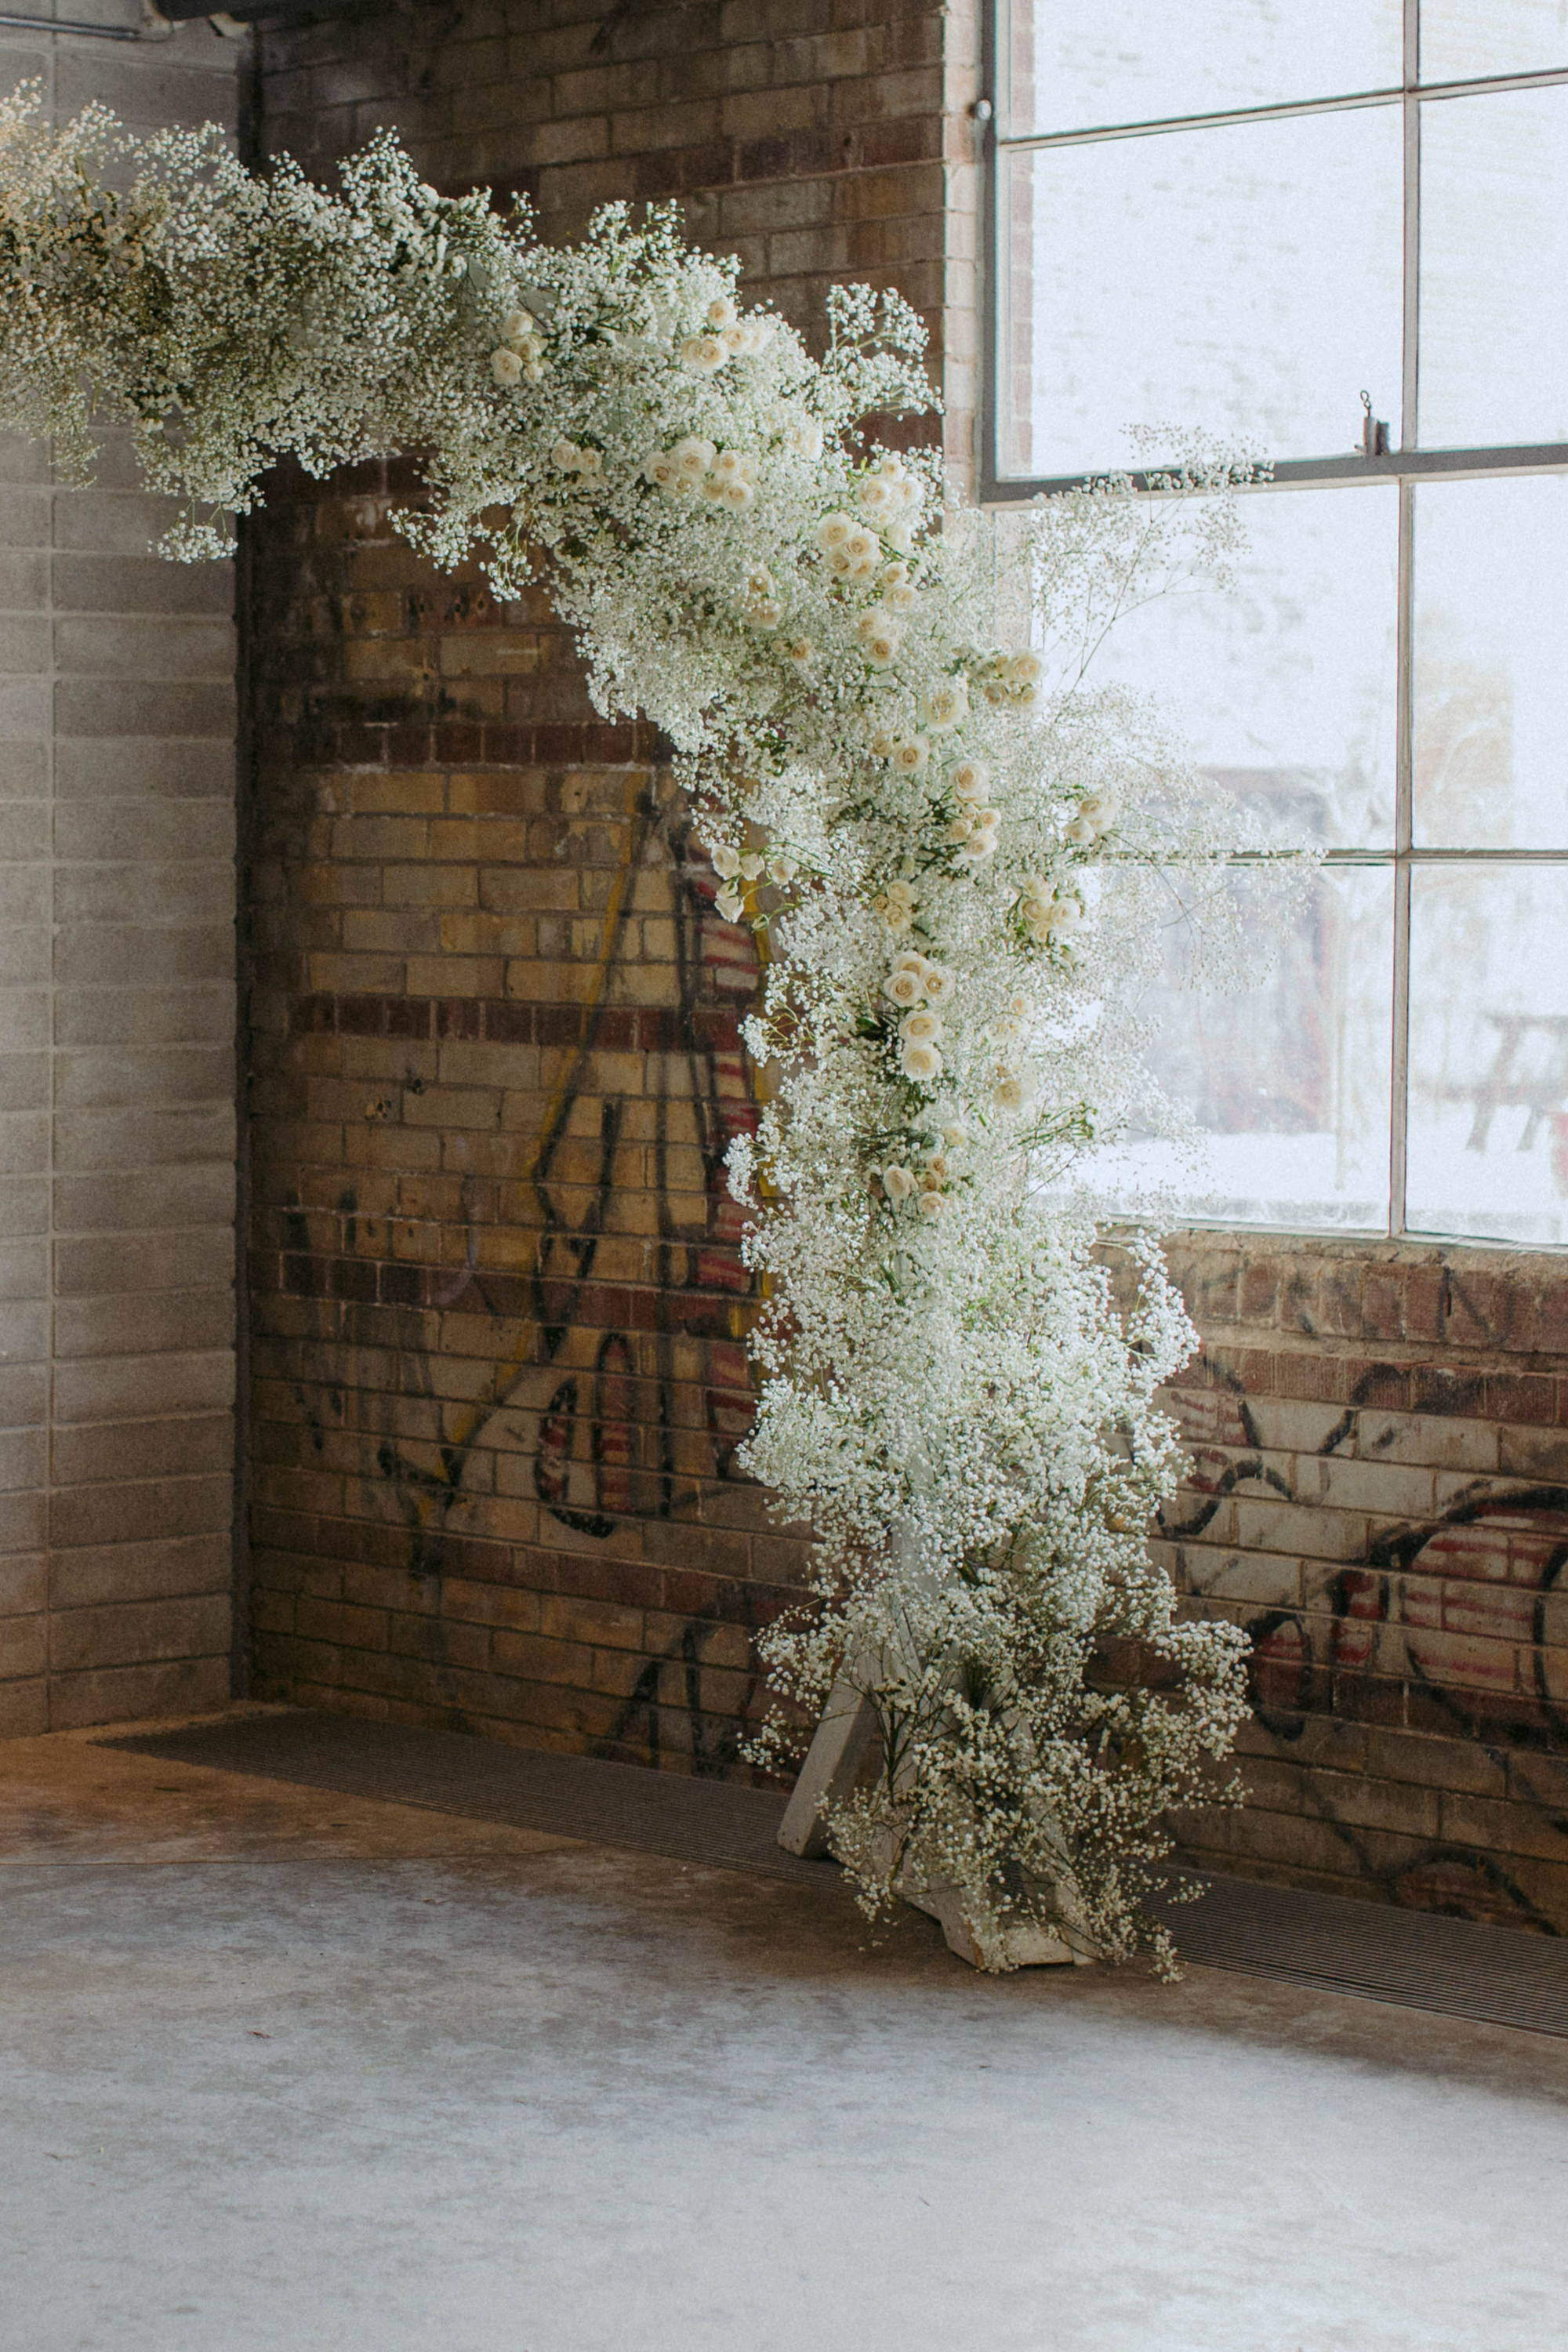 Floral arch with baby's breath at Evergreen Brickworks Toronto